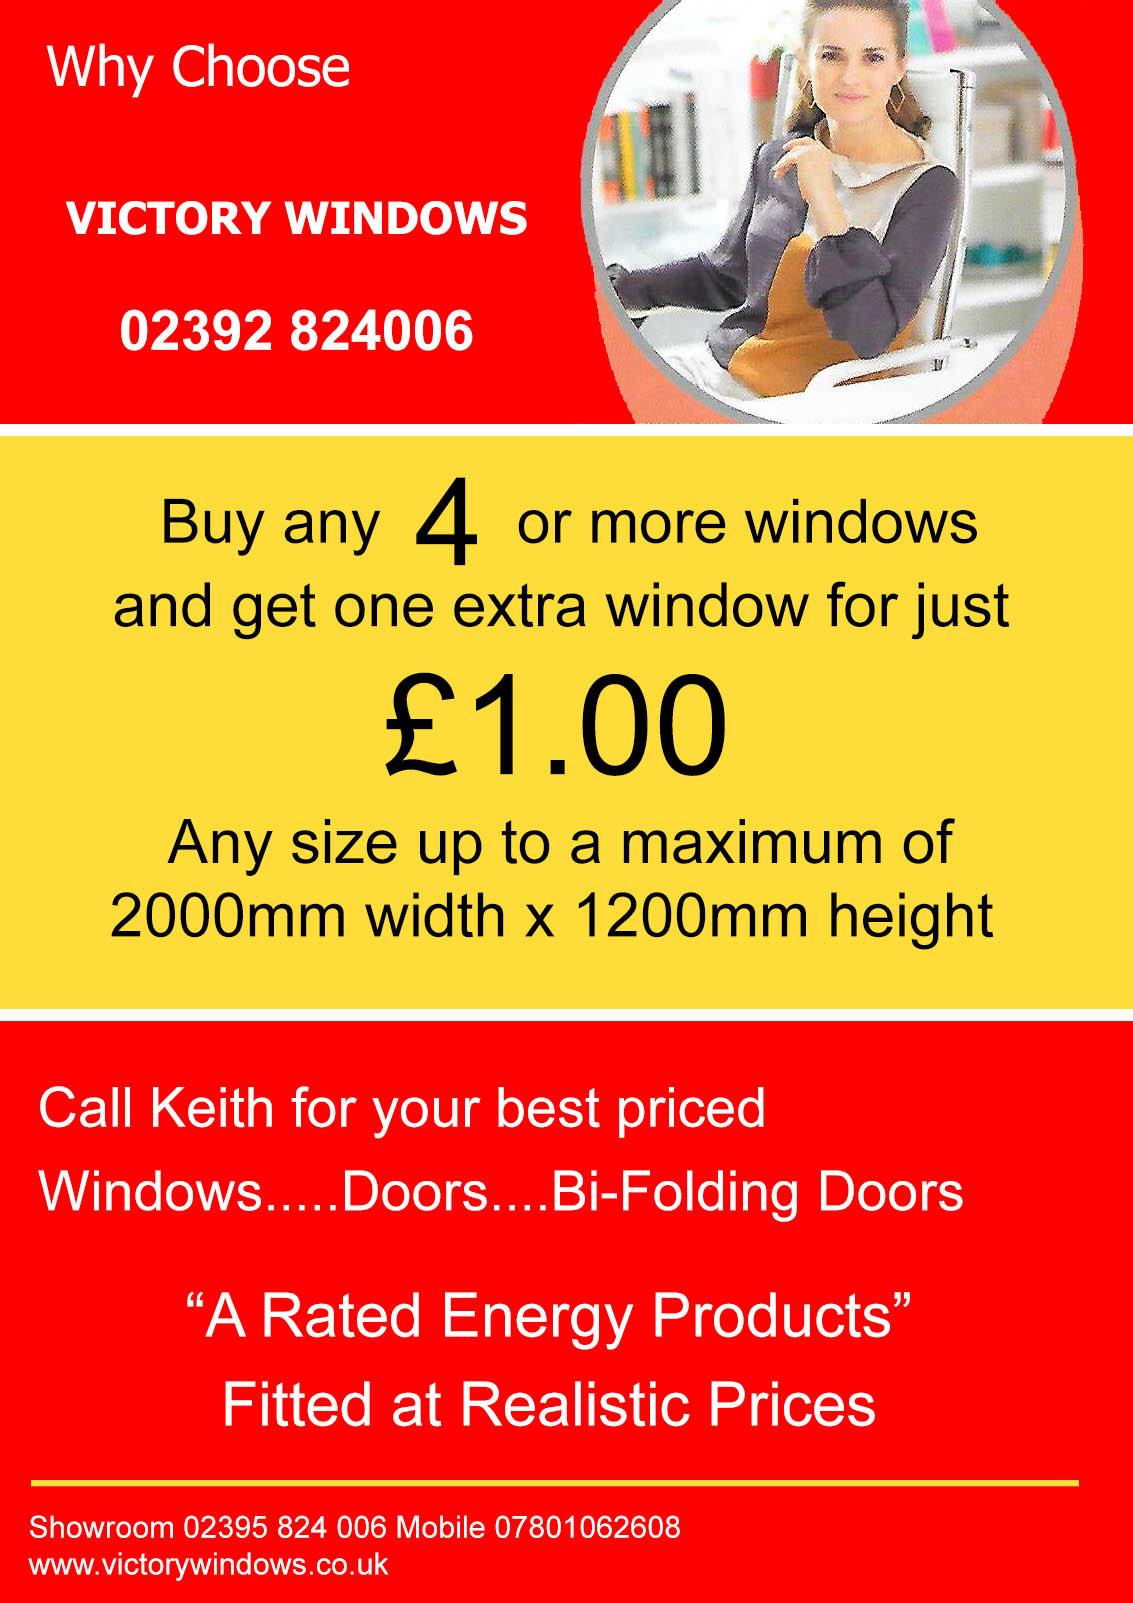 WIndows Doors and Bi-Folding Doors offers from Victory Windows Hampshire